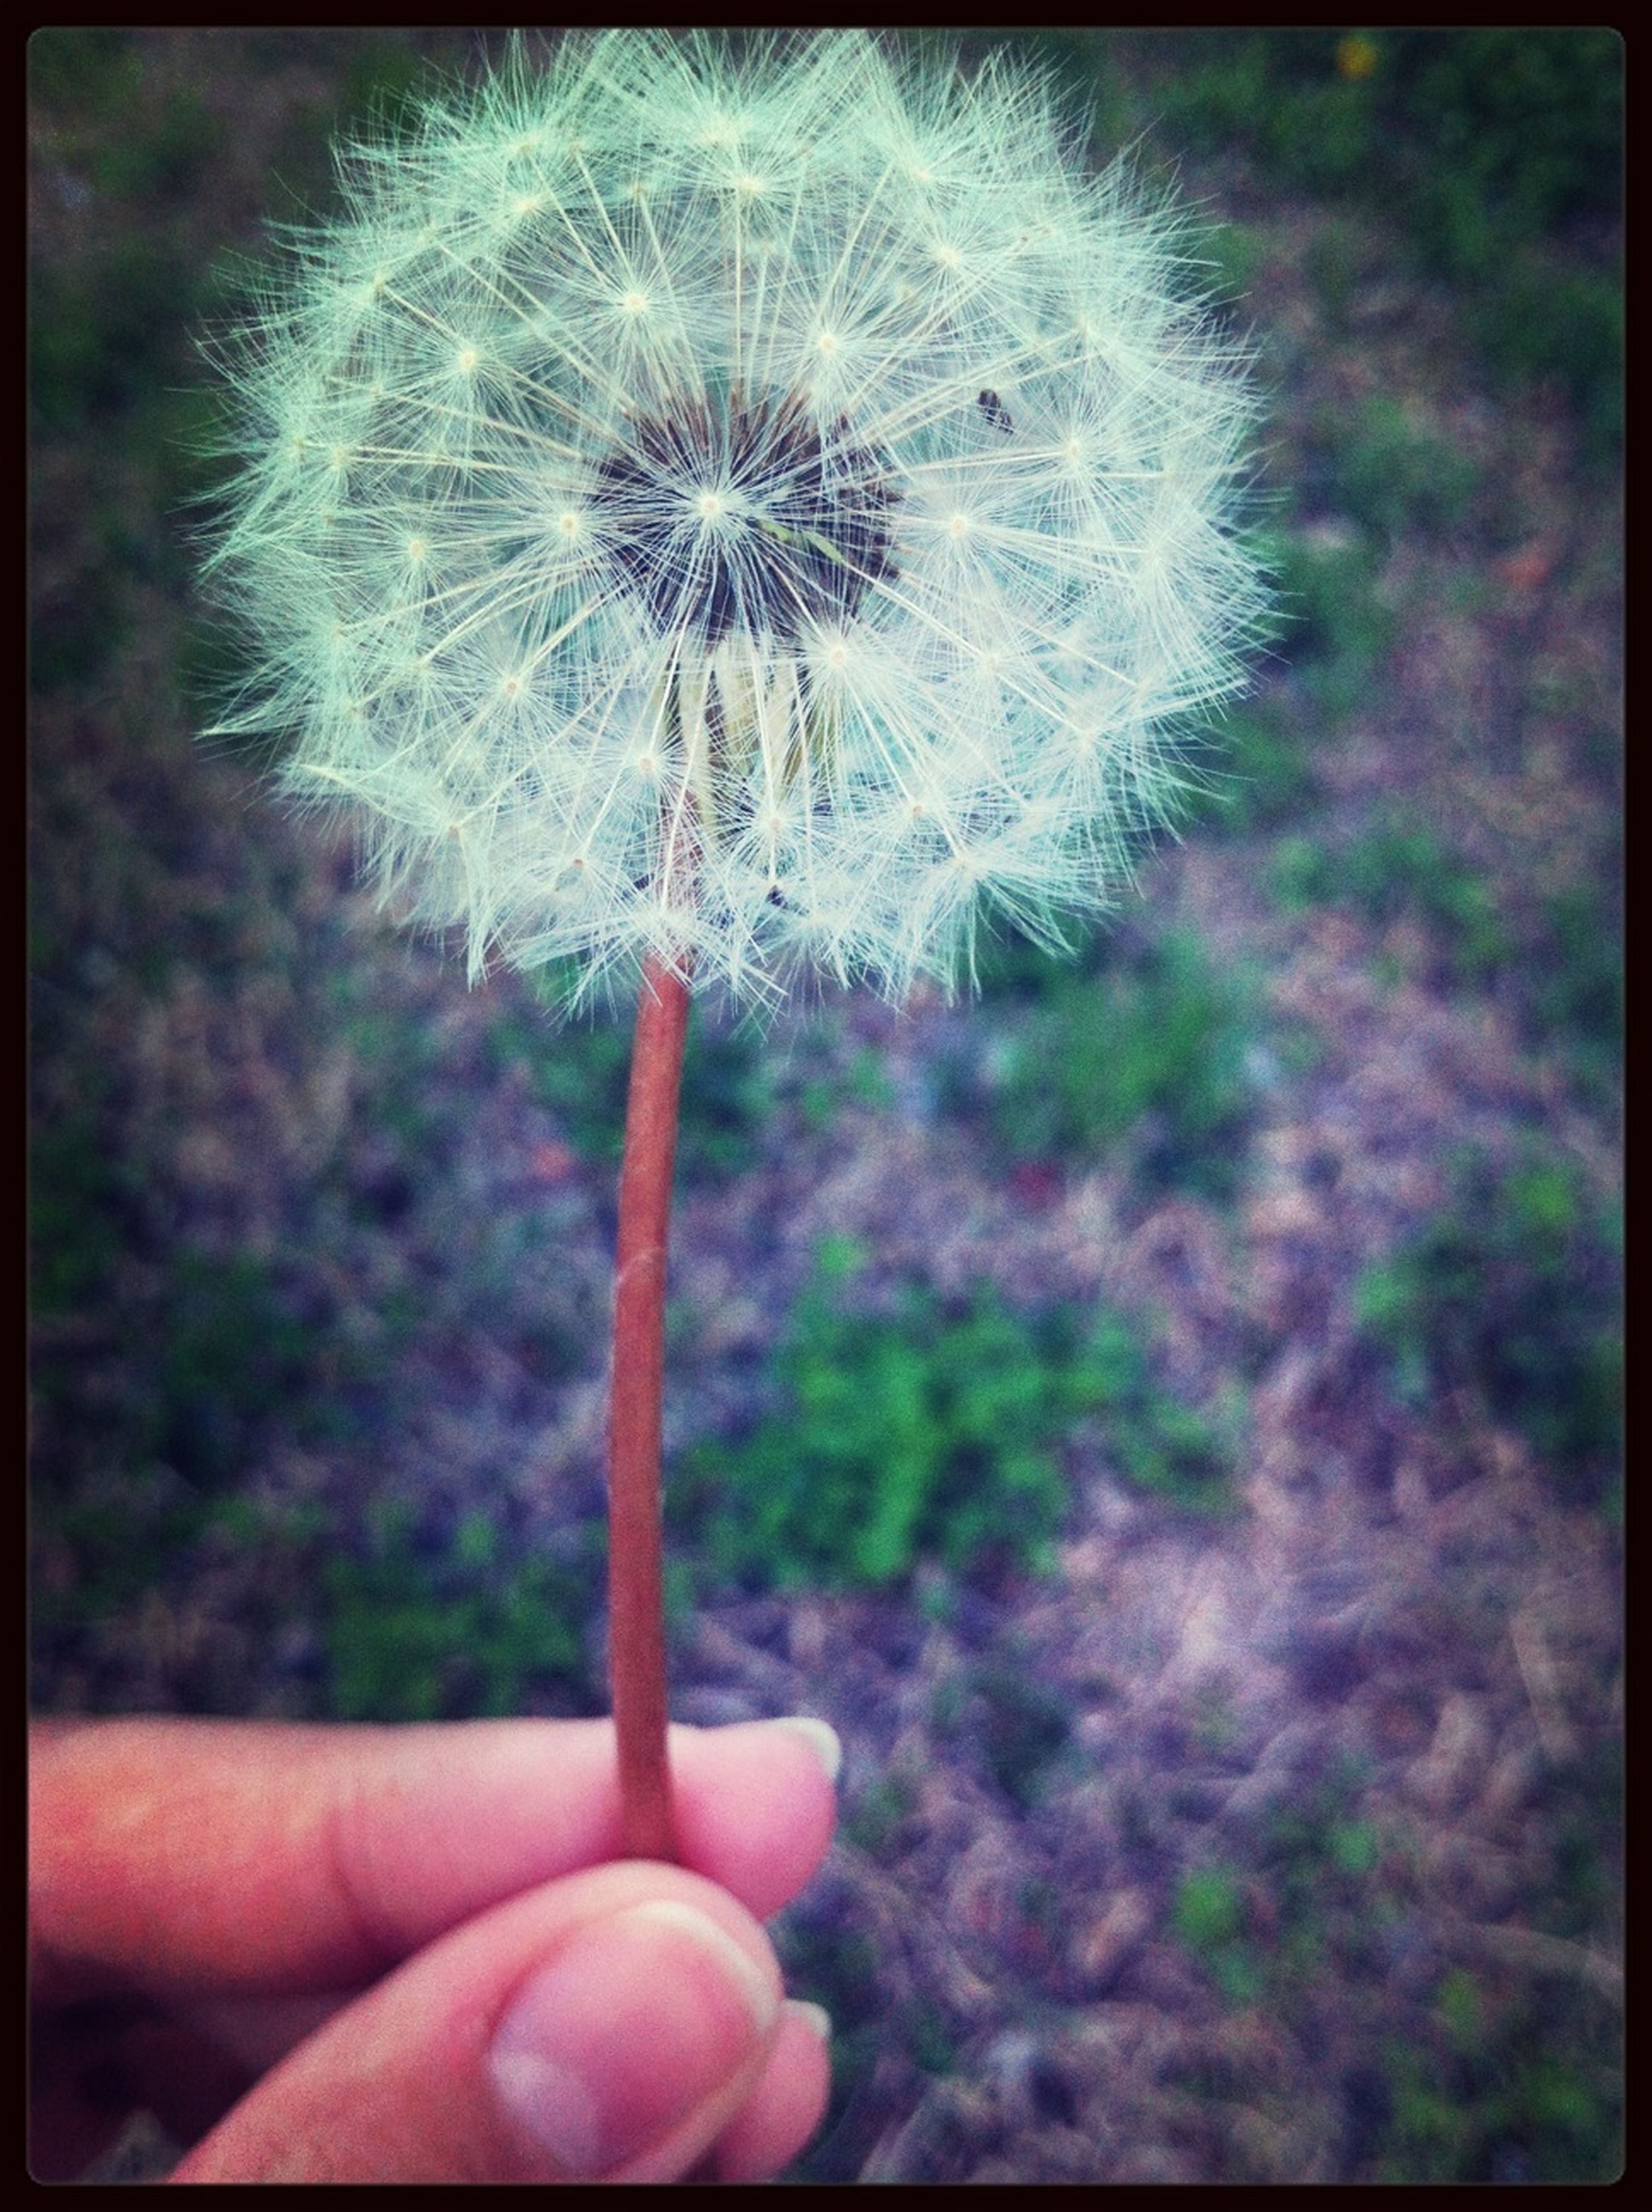 dandelion, flower, fragility, flower head, close-up, person, focus on foreground, single flower, growth, transfer print, freshness, holding, one person, softness, stem, nature, beauty in nature, auto post production filter, part of, plant